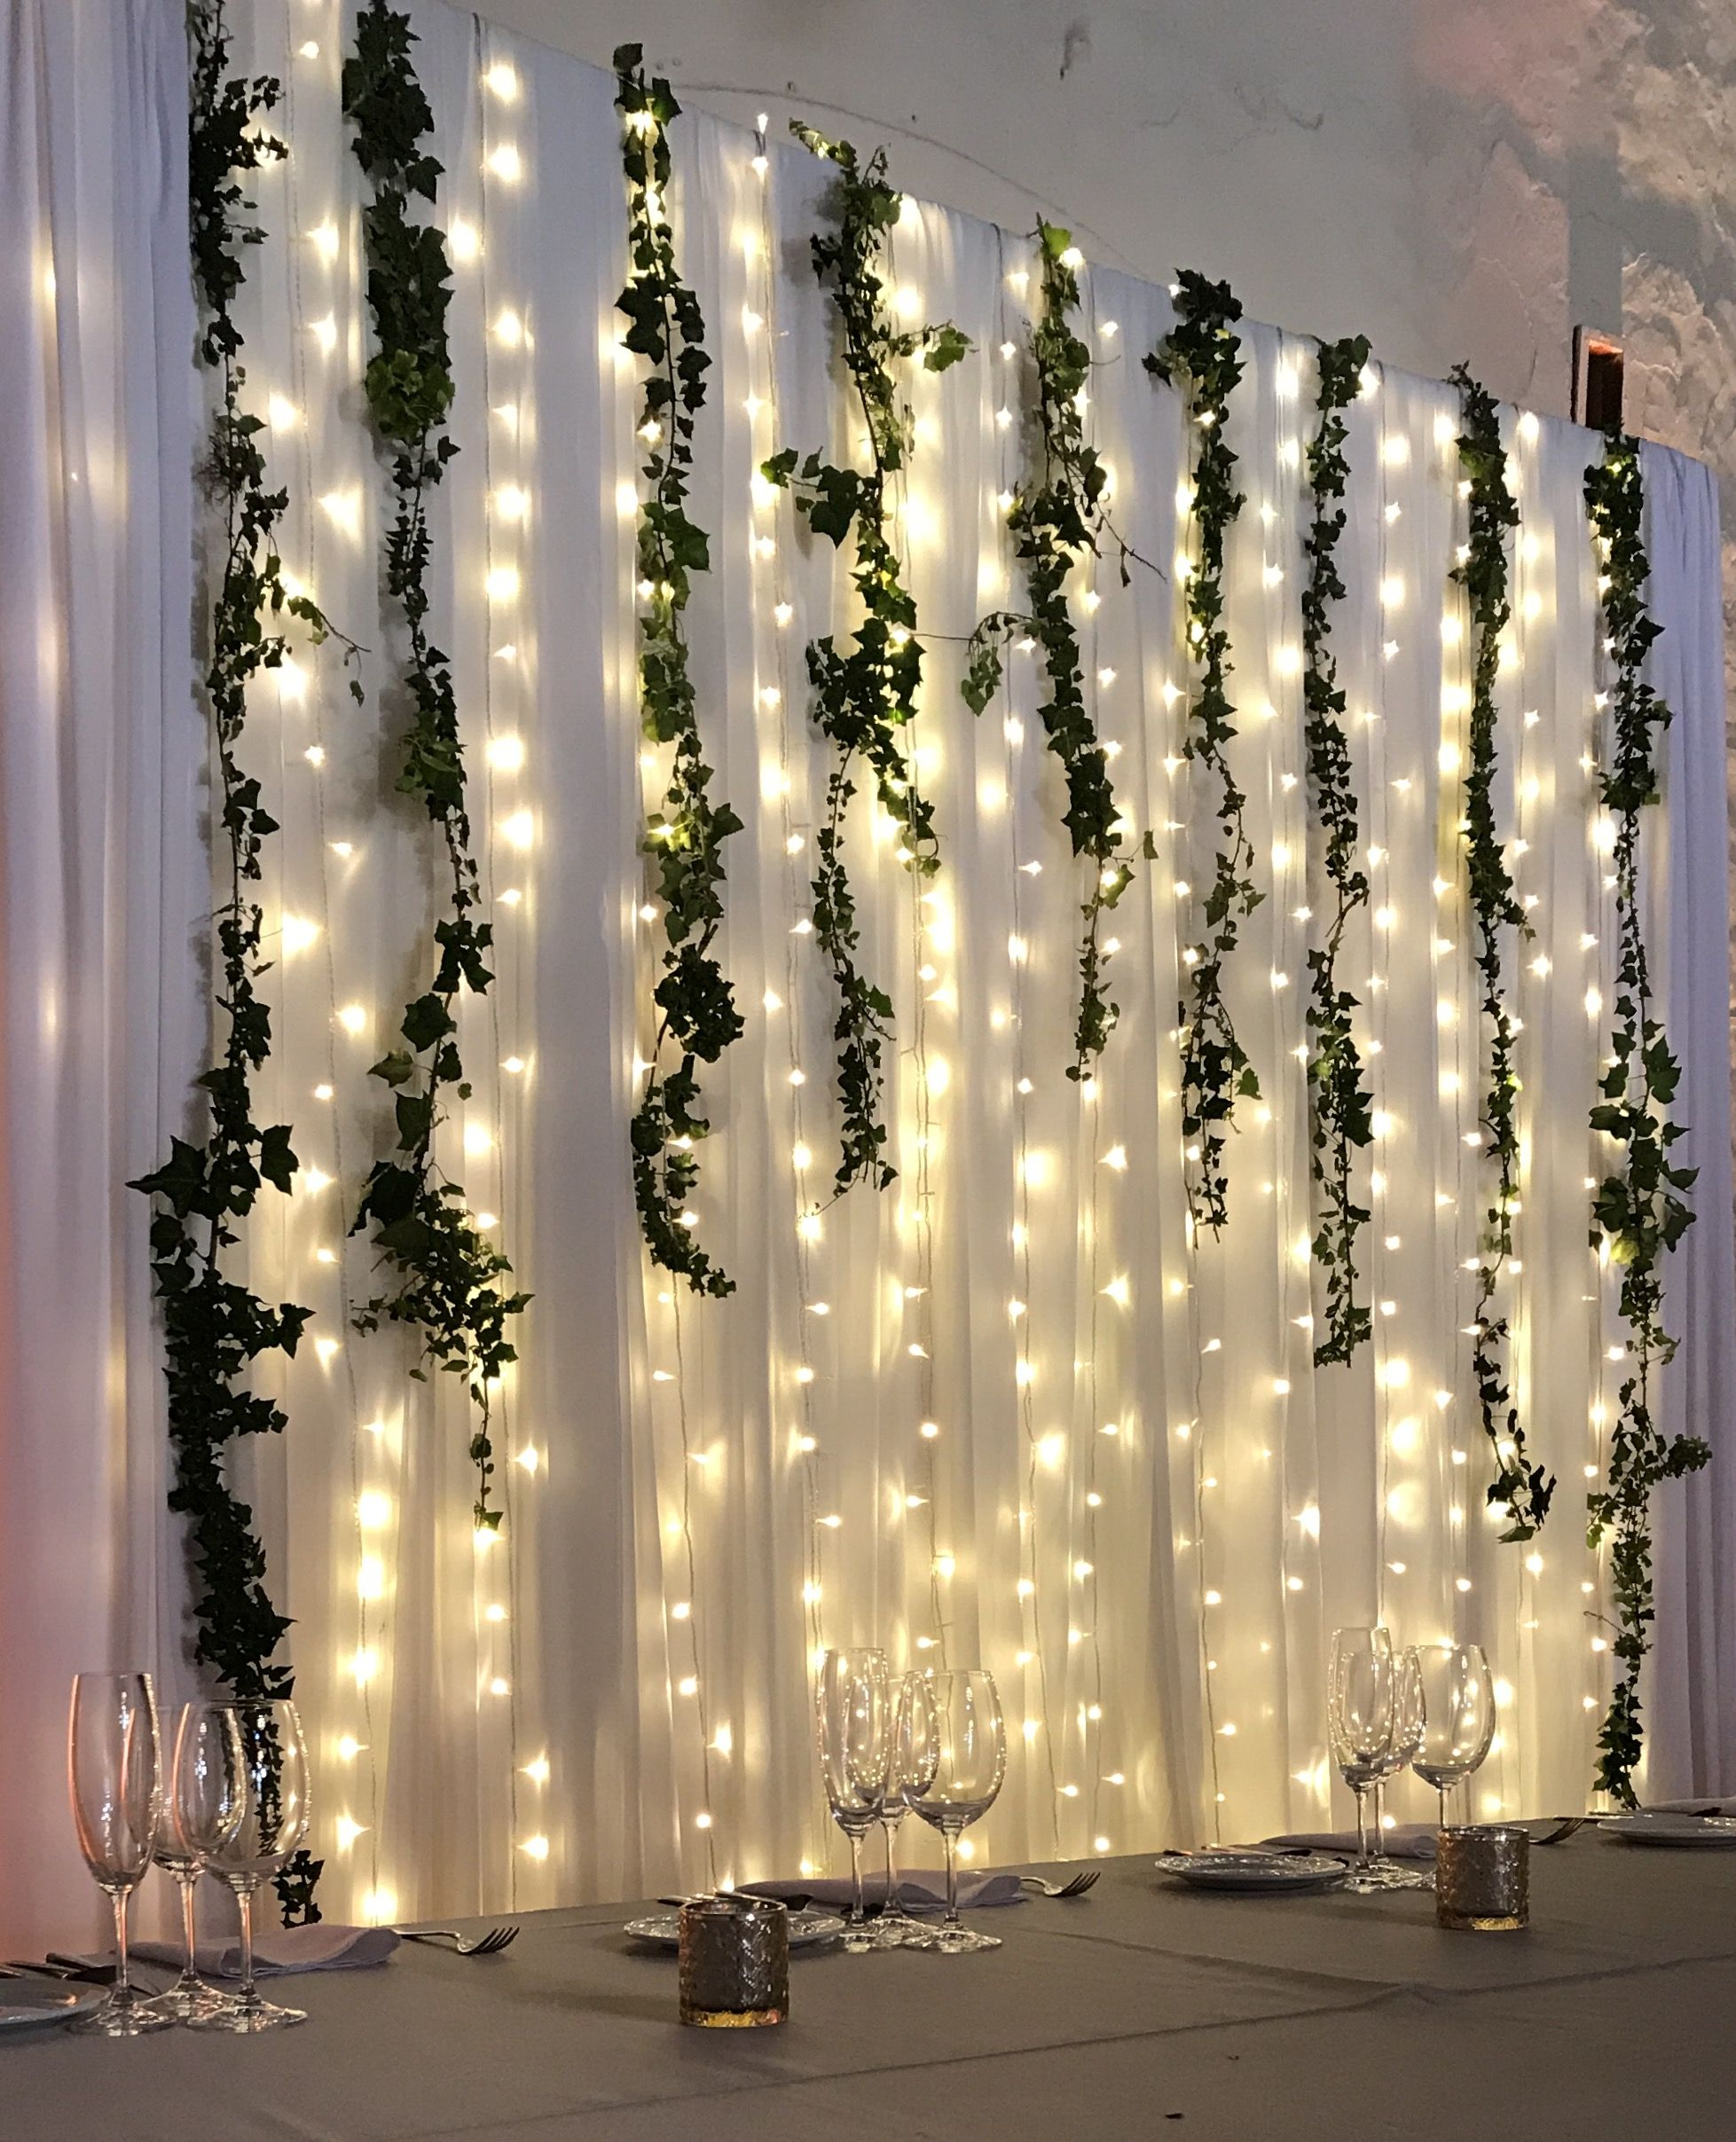 Lights Tulle And Greenery